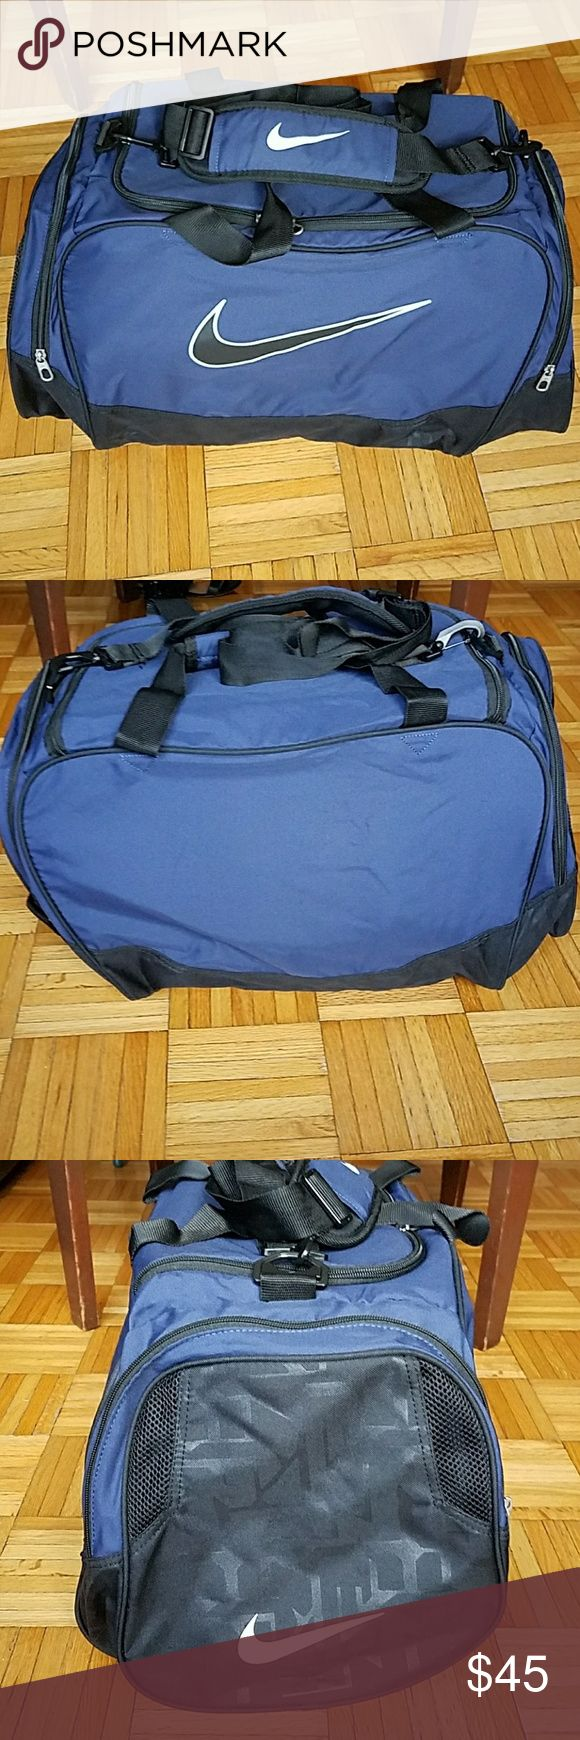 """Nike Duffel Bag -Spacious & Lightweight Blue Nike Duffel Bag -used once! Now just sitting in the closet - like new condition! -can be hand-held (two handles-photo #6) but also has an adjustable shoulder strap with Nike logo -one main u-shaped opening compartment with inside zelcro pocket, 2 side compartments on outside of bag -approximately 18"""" length not including side compartments, 11"""" height -has an area inside the handles where you can write your name -100% polyester Nike Bags"""